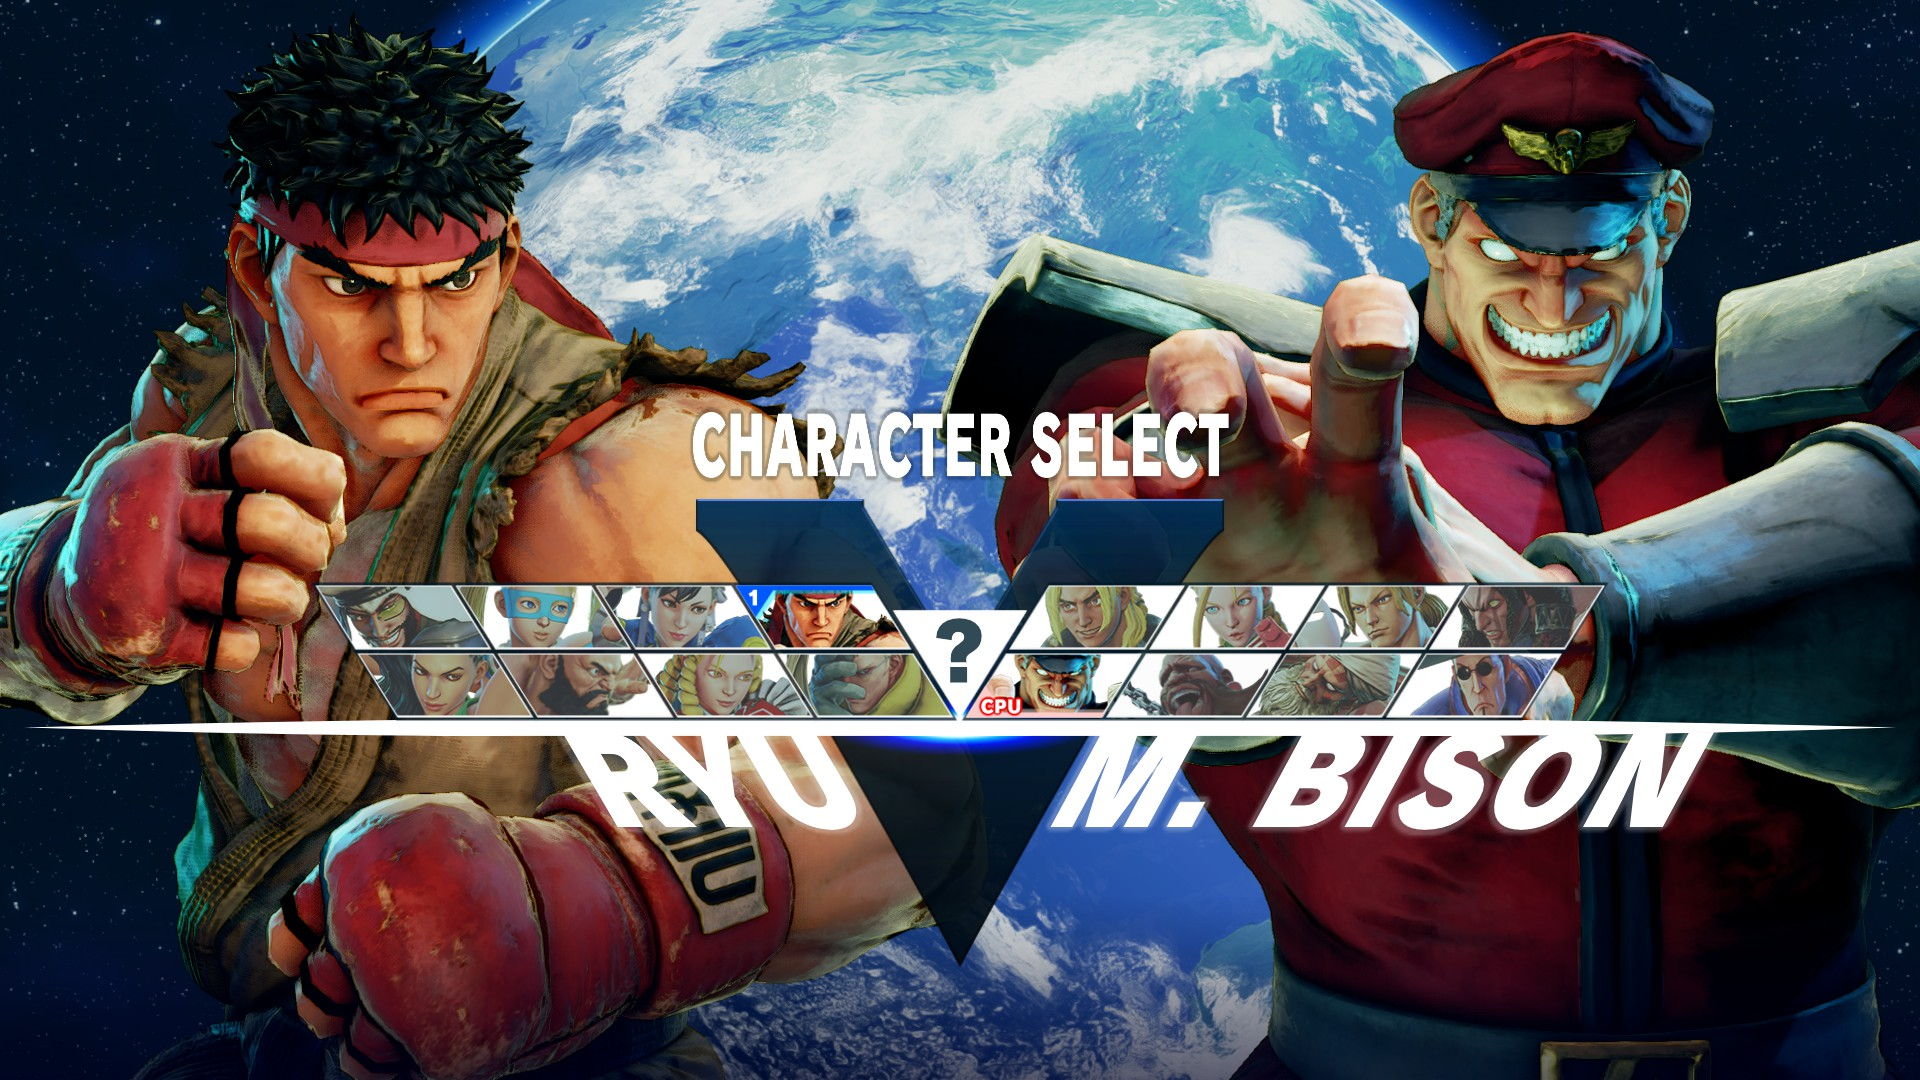 Roster dei personaggi disponibili al lancio di Street Fighter V